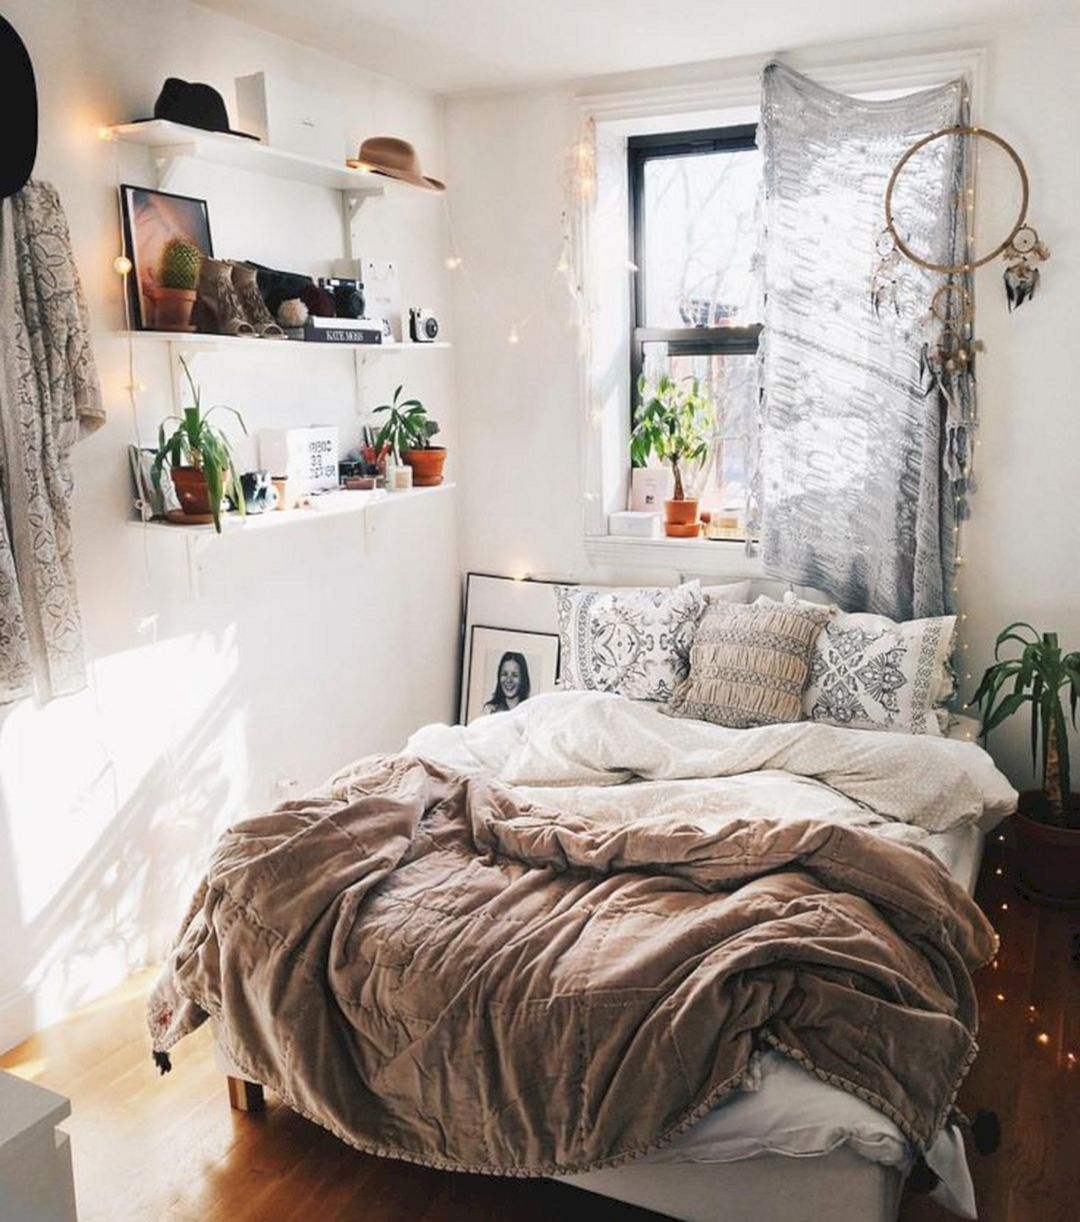 Bedroom Decorating Ideas Low Budget 2 Bedroom Apartment Layout Design Bedroom Design For Small Room Kentucky Bedroom Decor: 10+ Best And Modern Bedroom Decorating For Your Cozy